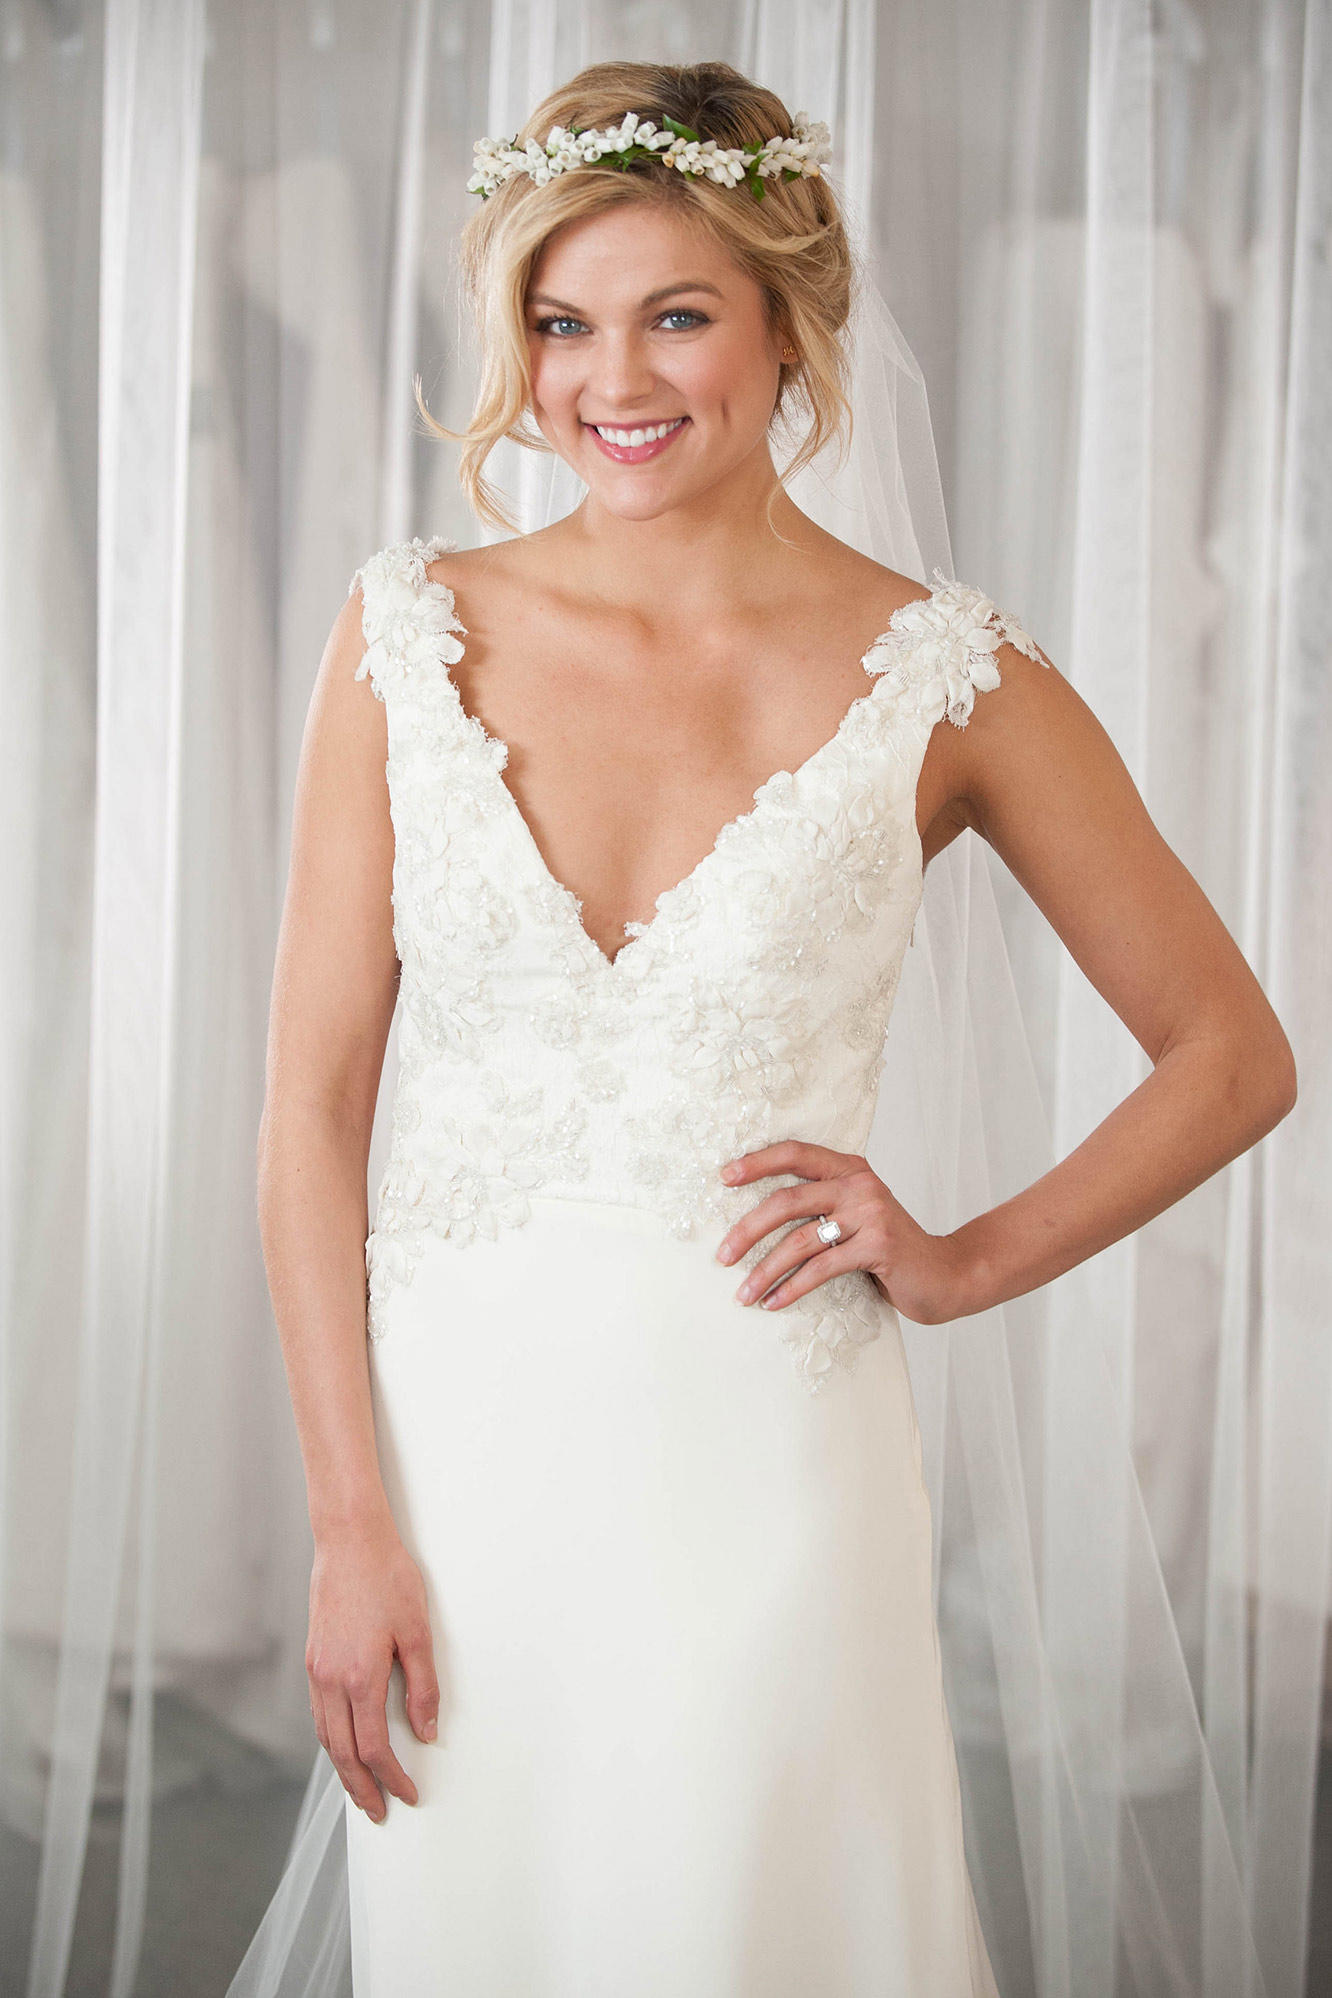 Heidi\\\'s Custom Lace Wedding Dress for a Country Chic Bride ...